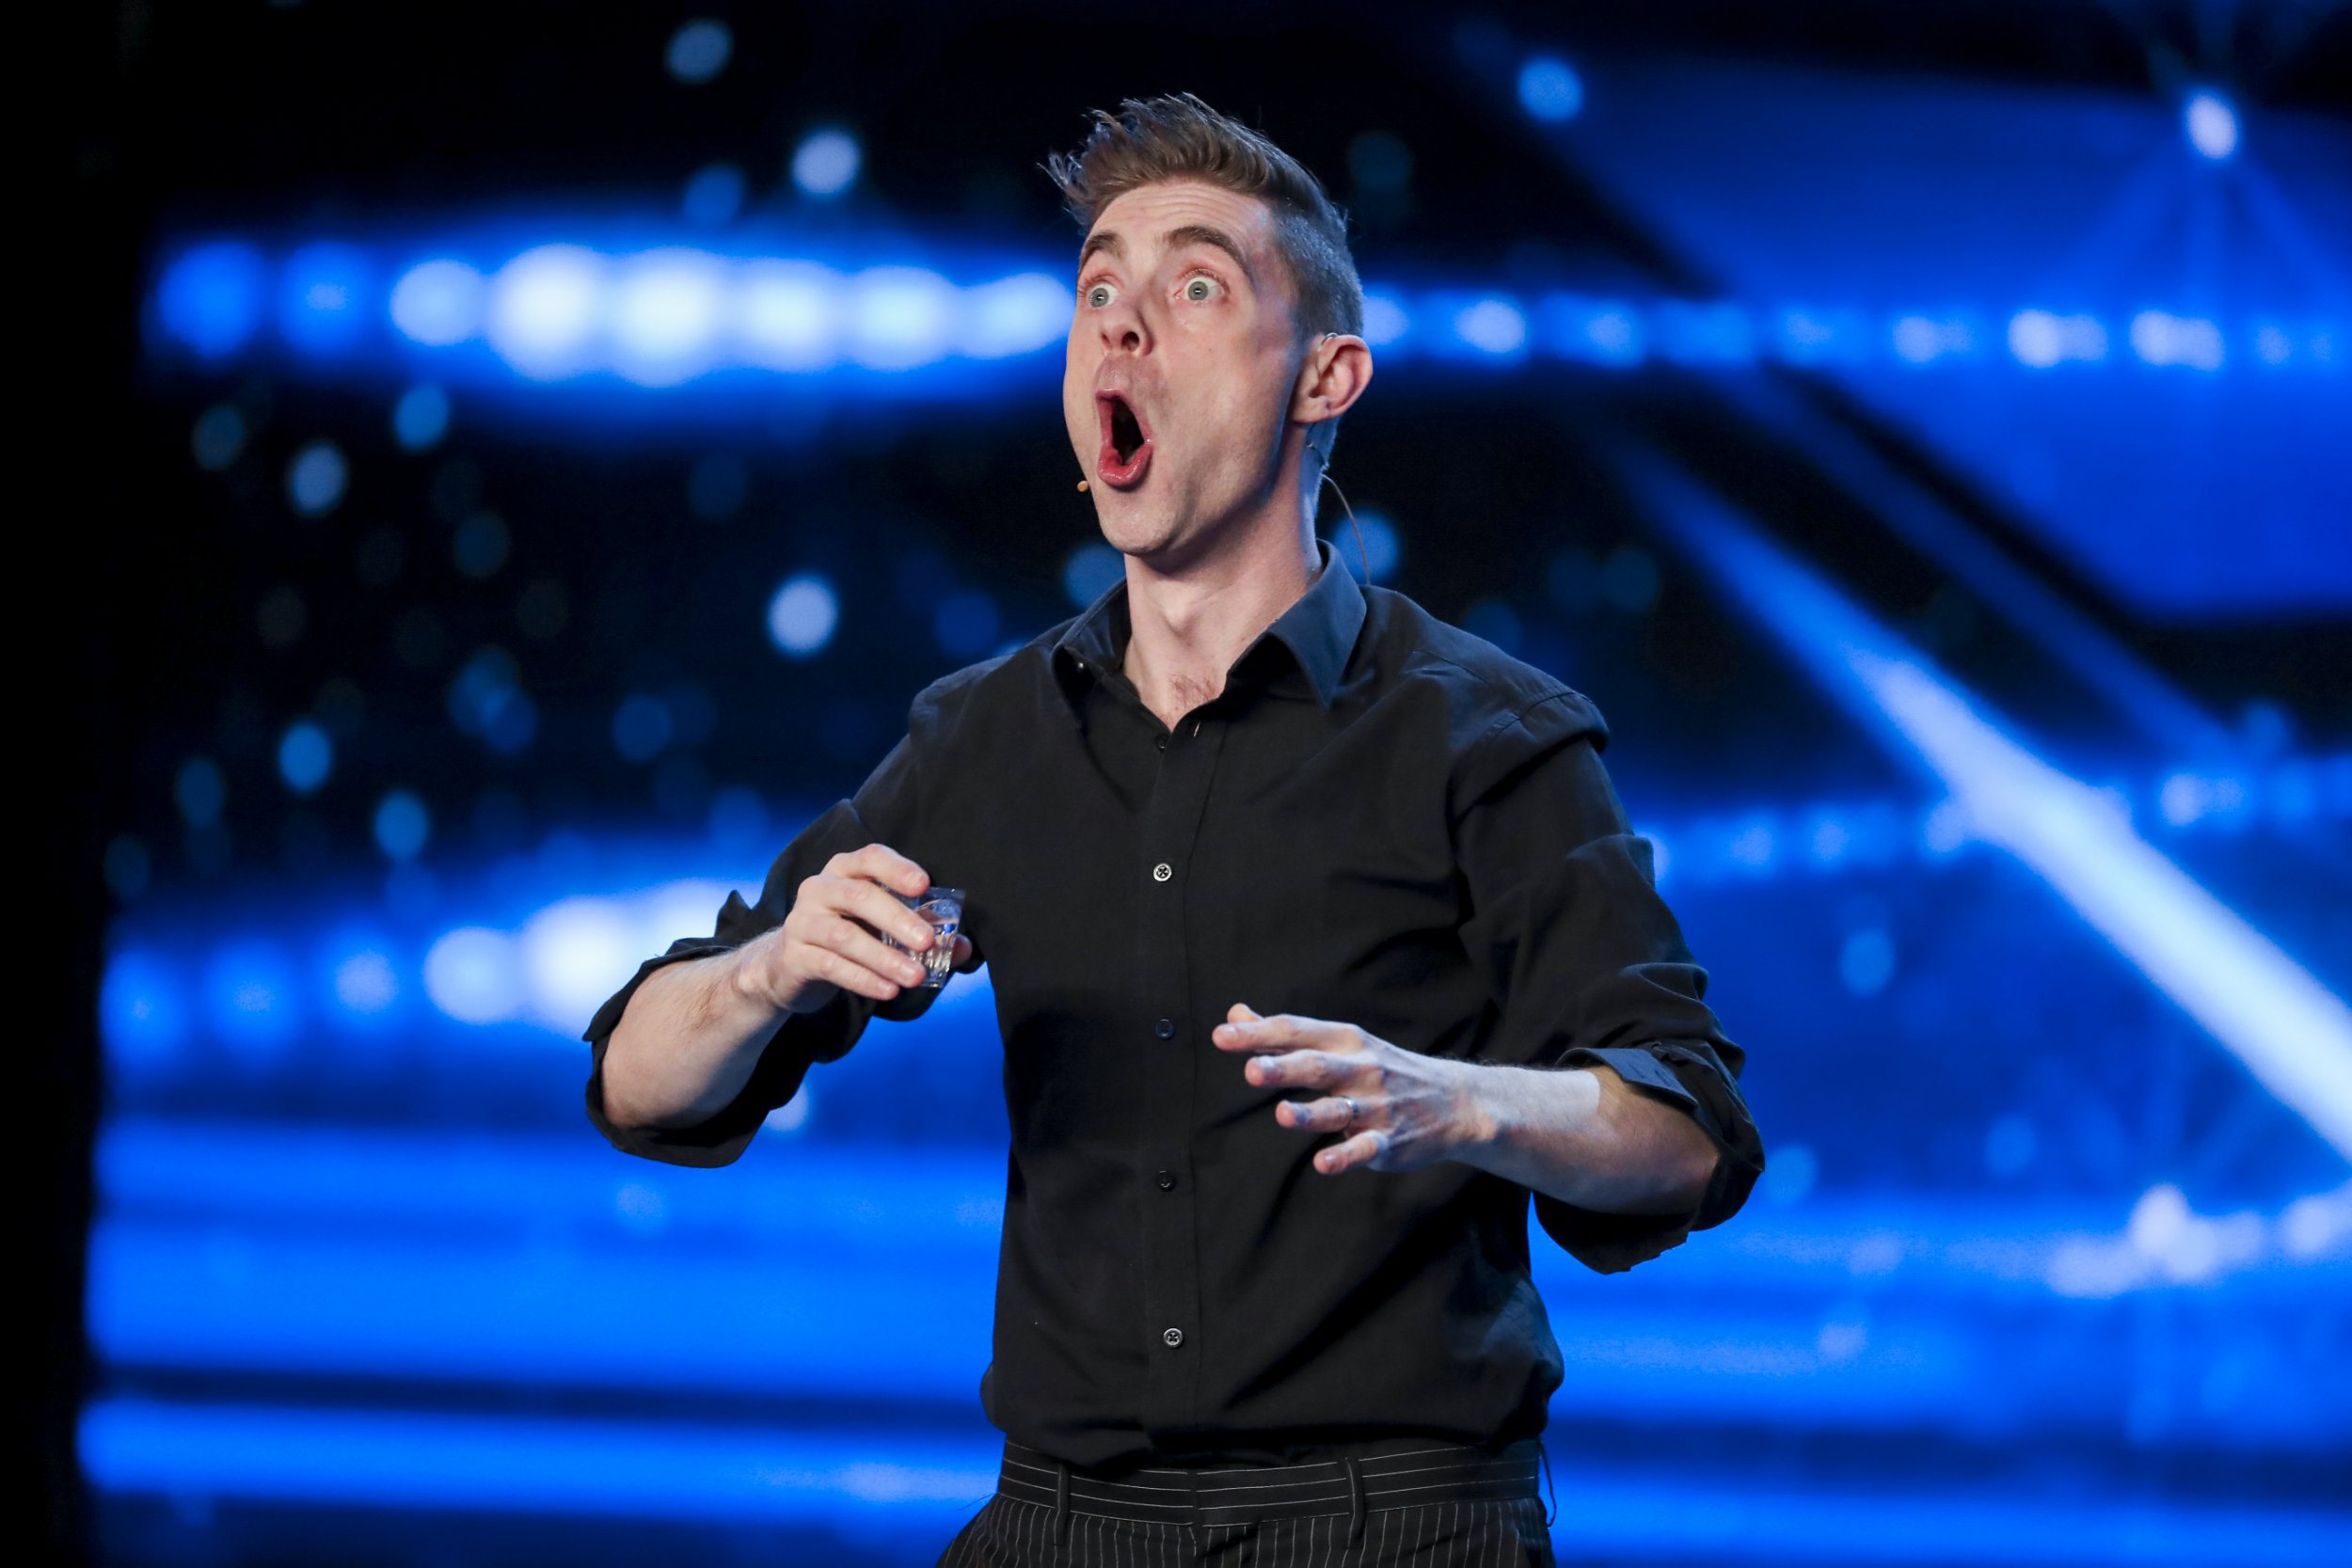 **STRICTLY NO WEB UNTIL 00:01 BST SAT MAY 13TH** Britain's Got Talent judges and performers are seen on the show airing Saturday May 13th. Pictured is Matt Edwards.